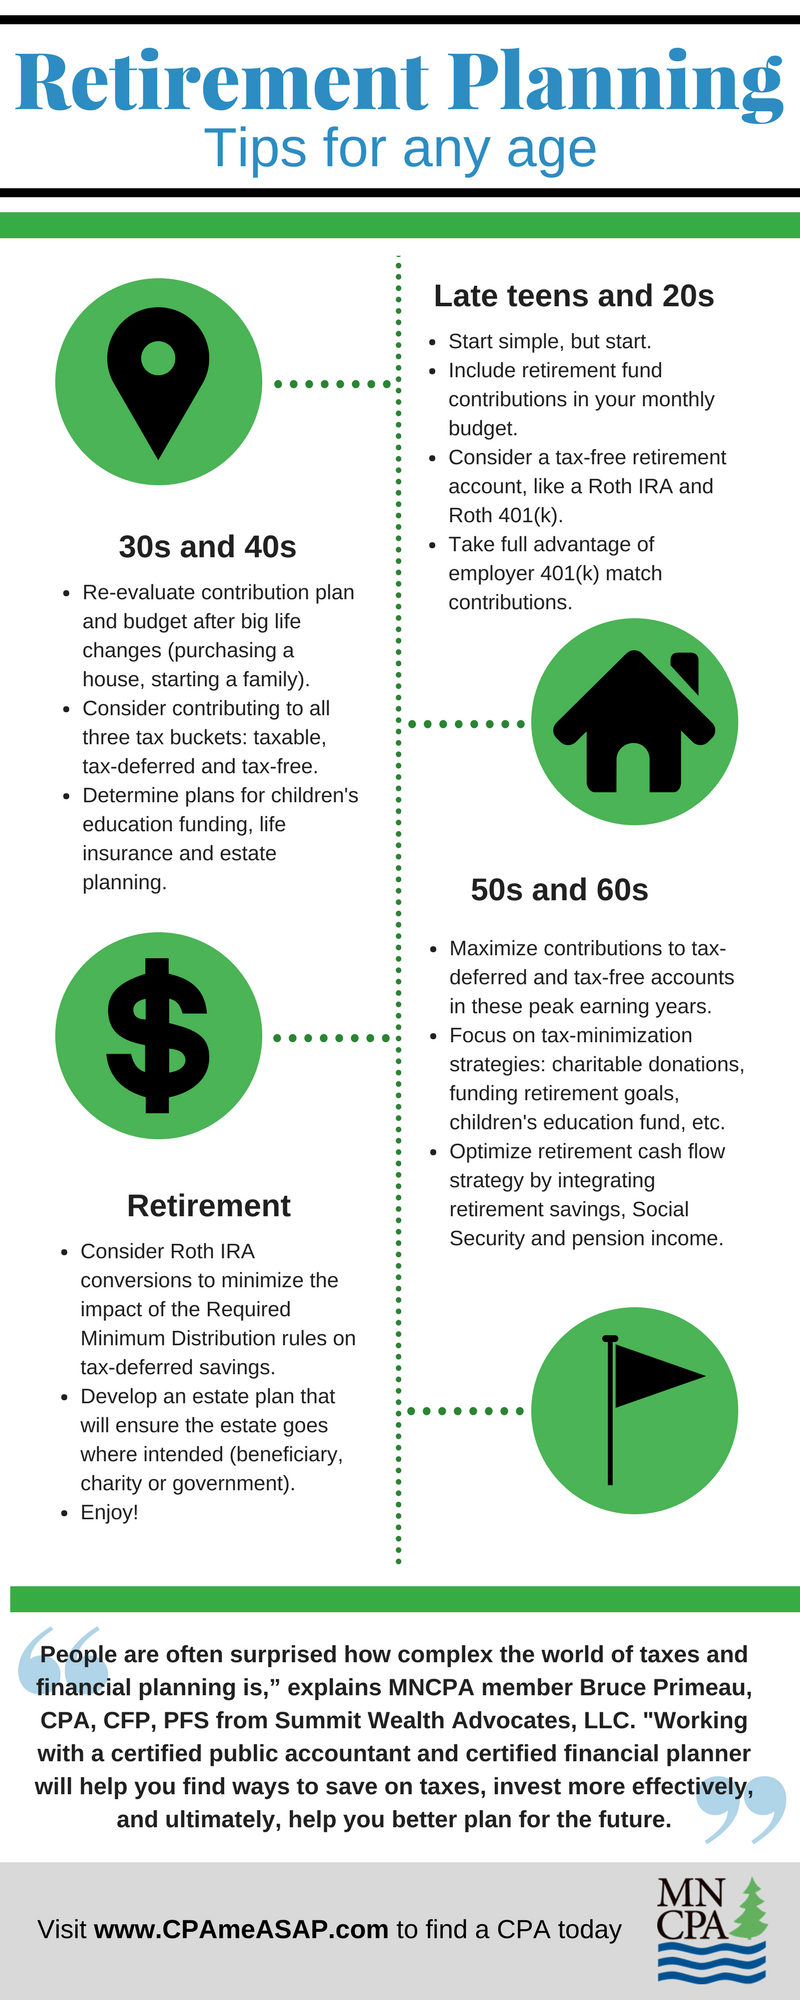 mncpa perspectives tips for retirement planning at any age